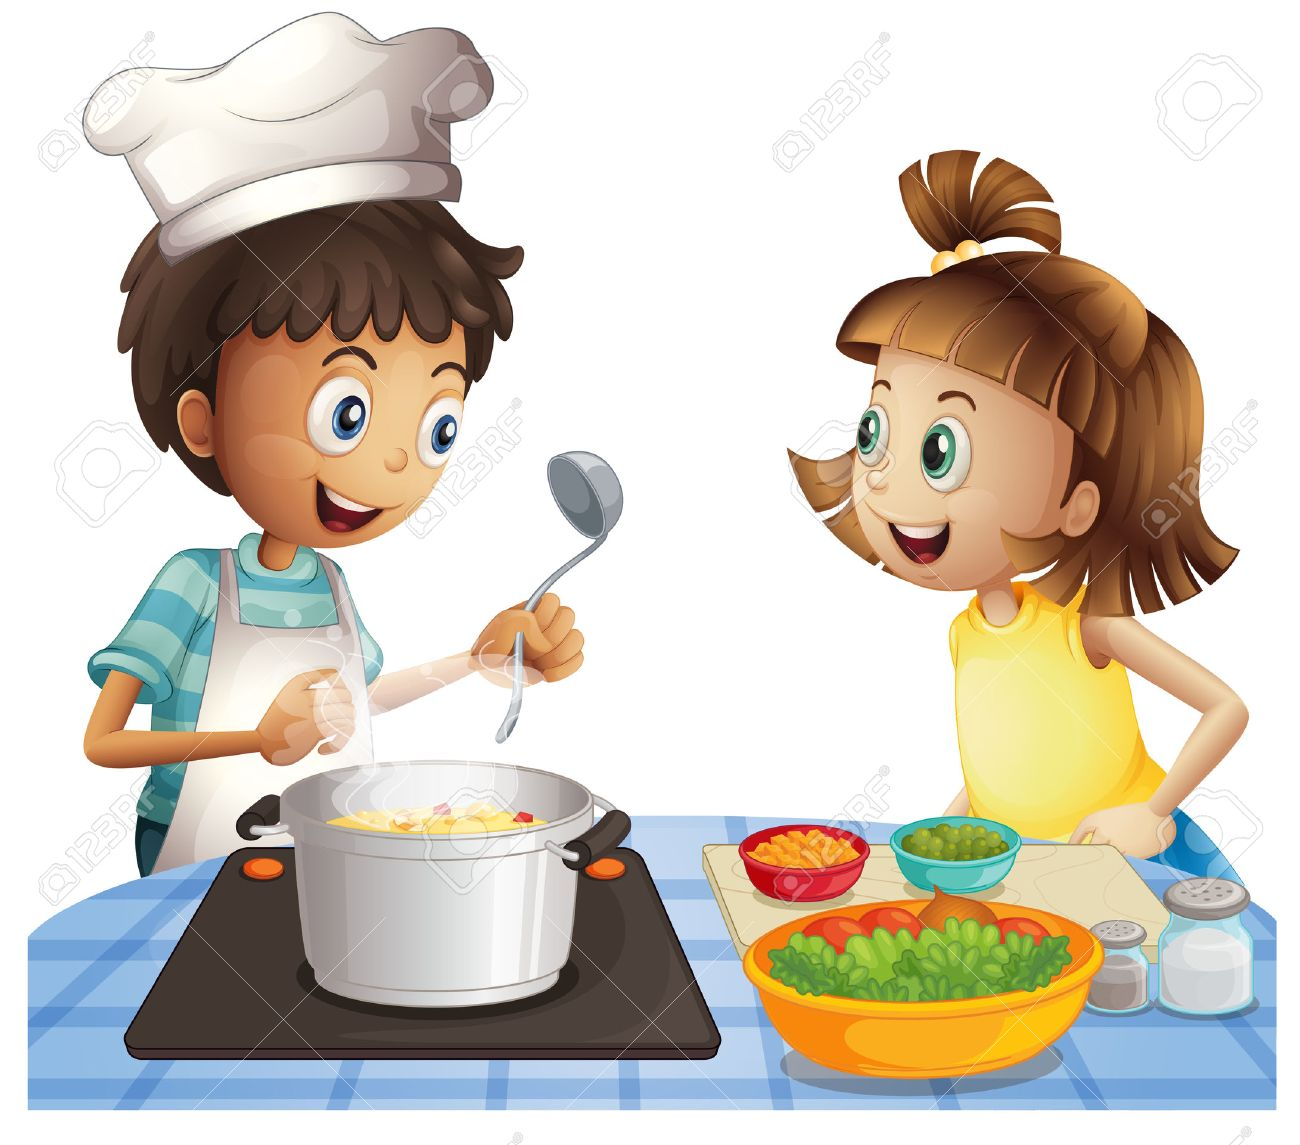 Kitchen utensils drawing for kids - Illustration Of Two Children Cooking Stock Vector 36011745